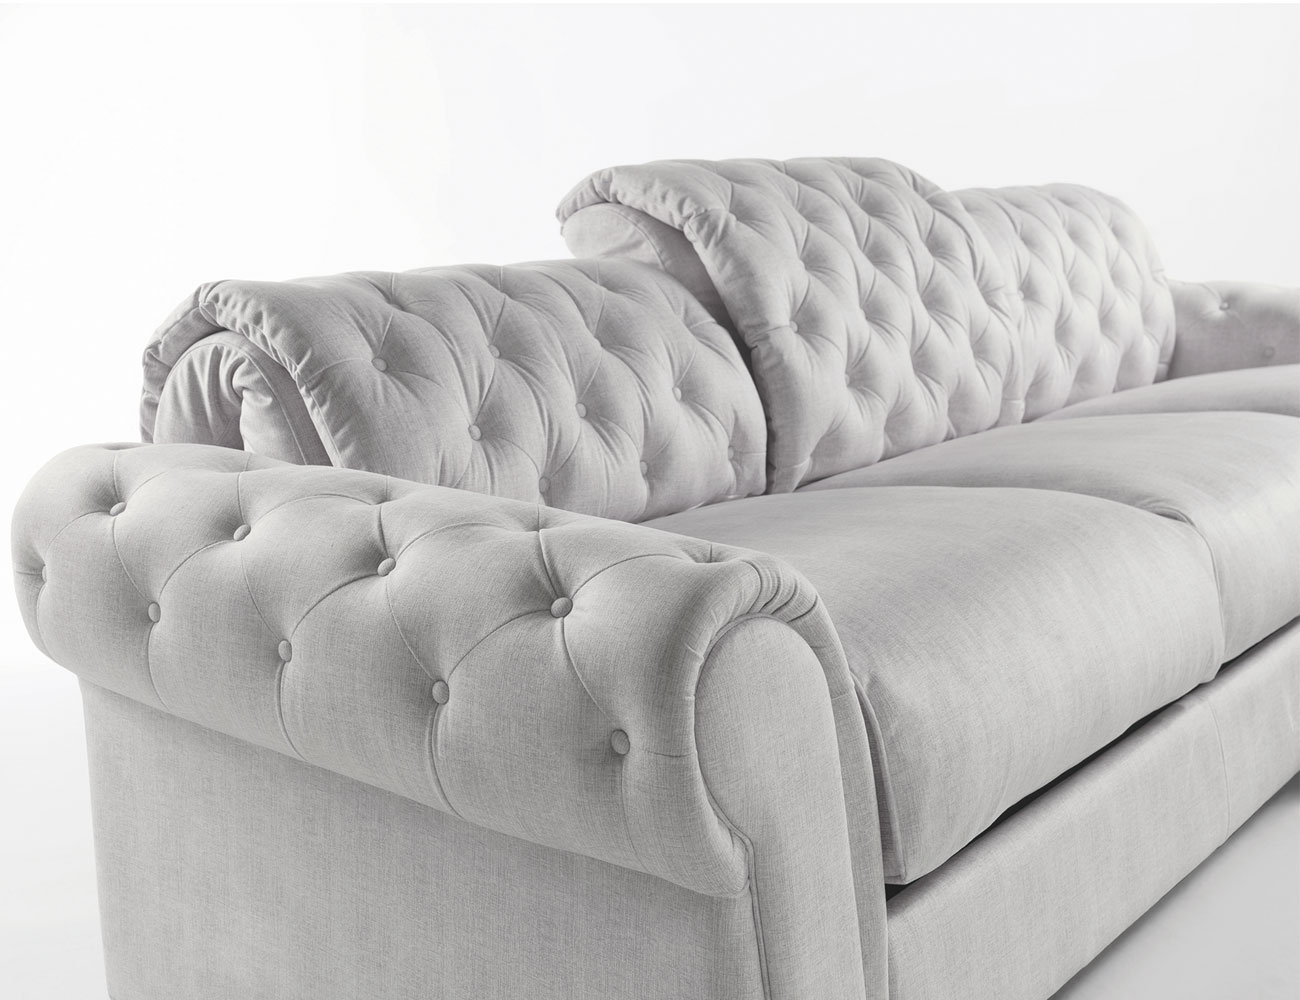 Sofa chaiselongue gran lujo decorativo capitone blanco tela 134